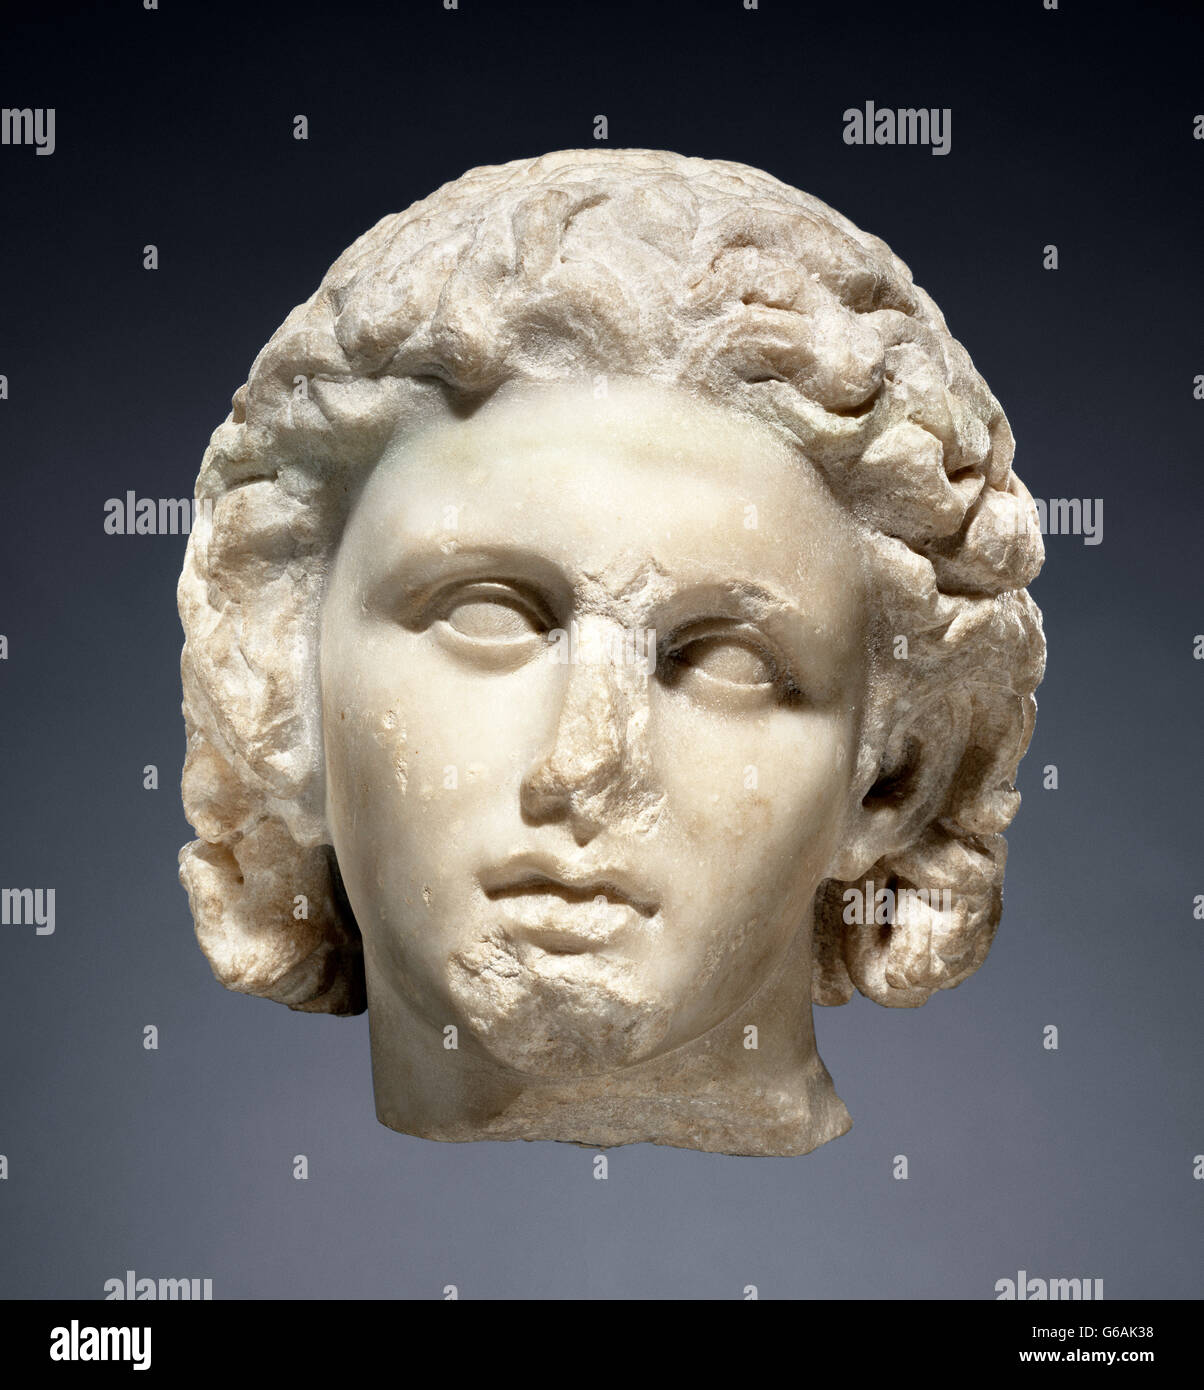 Alexander the Great. Marble head of Alexander the Great, c.320 BC - Stock Image